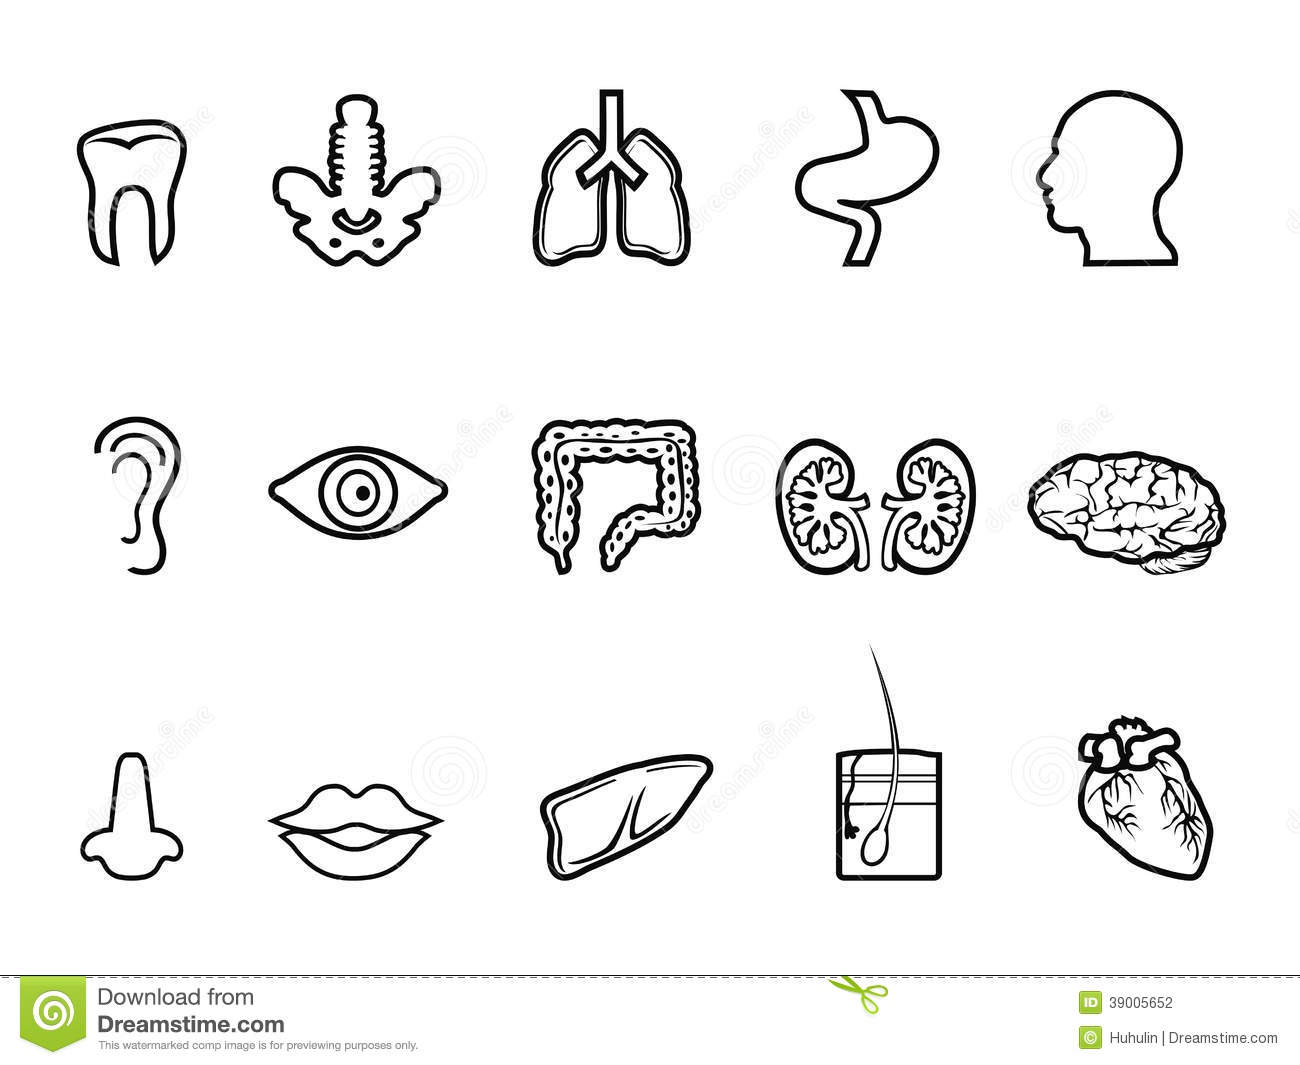 Stock Photography Black Human Anatomy Outline Icon Isolated White Background Image39005652 moreover Stock Photo Vintage Border Image864610 in addition Stock Photography Cosmetics Icons Set Black White Illustrations Image32352222 as well Harry Carays additionally Young Living Vinyl Car Decal. on skin care travel